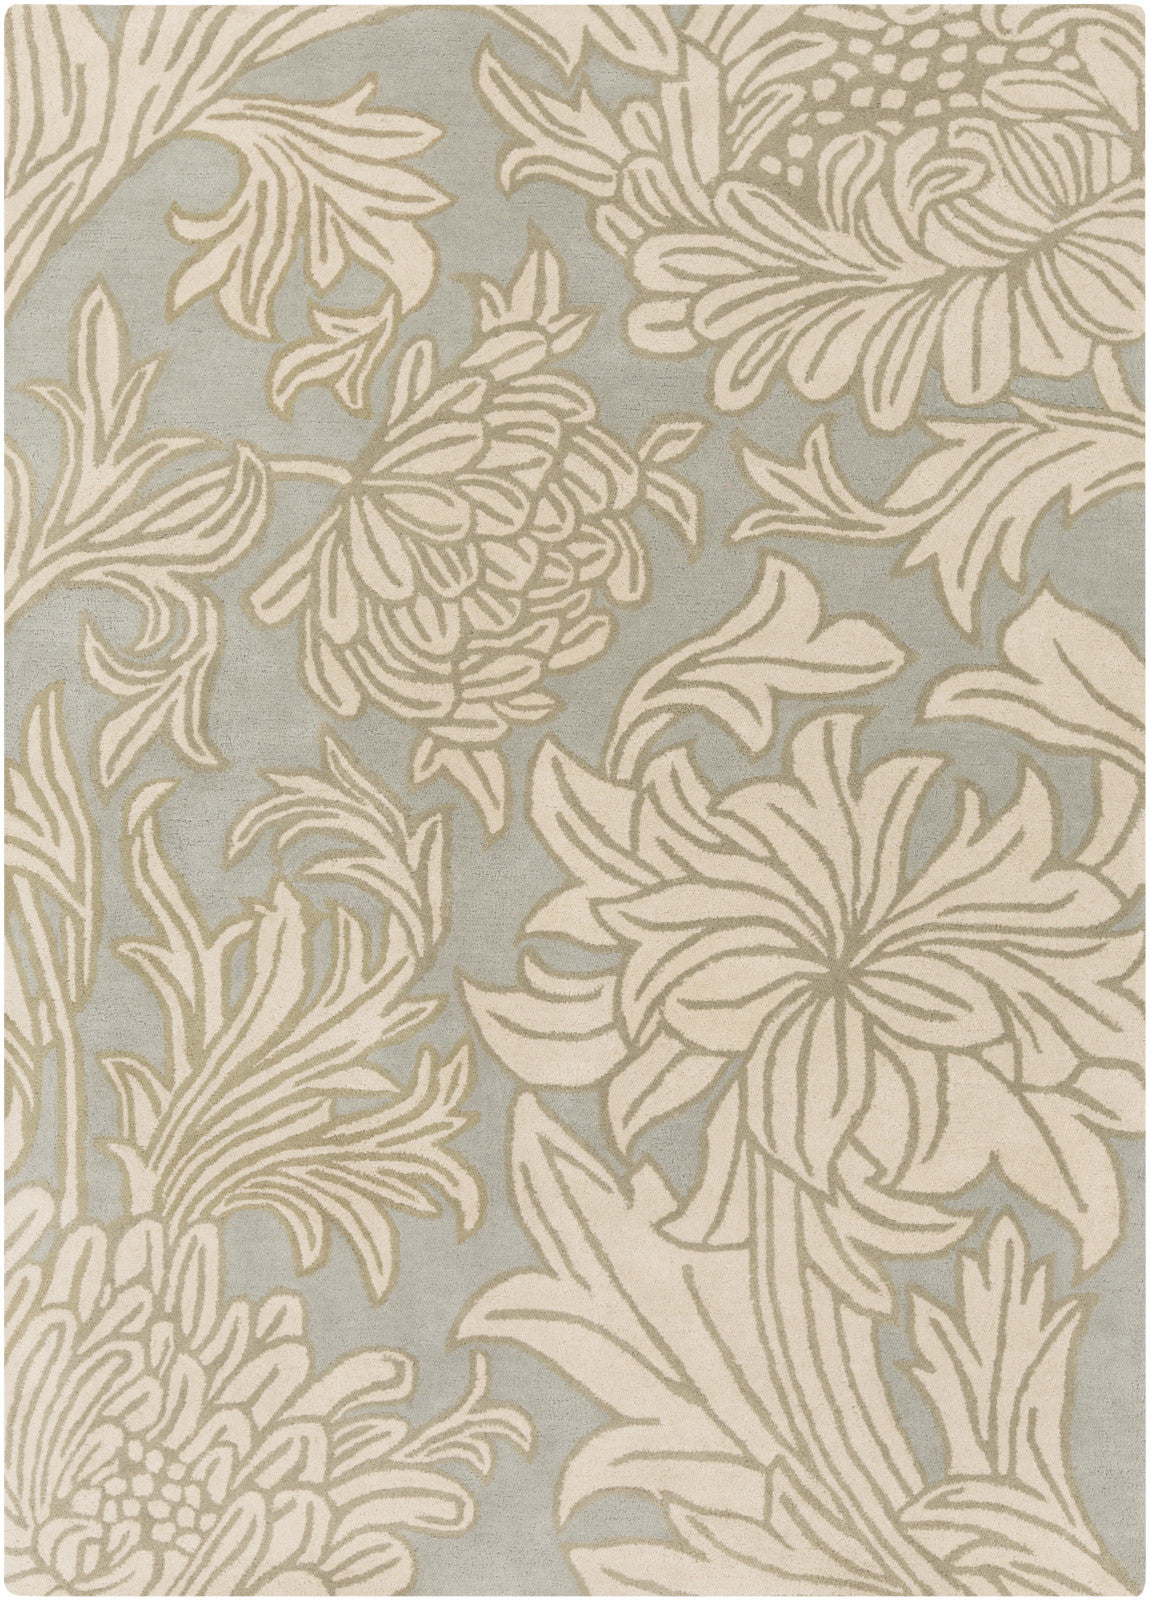 Surya WLM-3009 Area Rug by William Morris